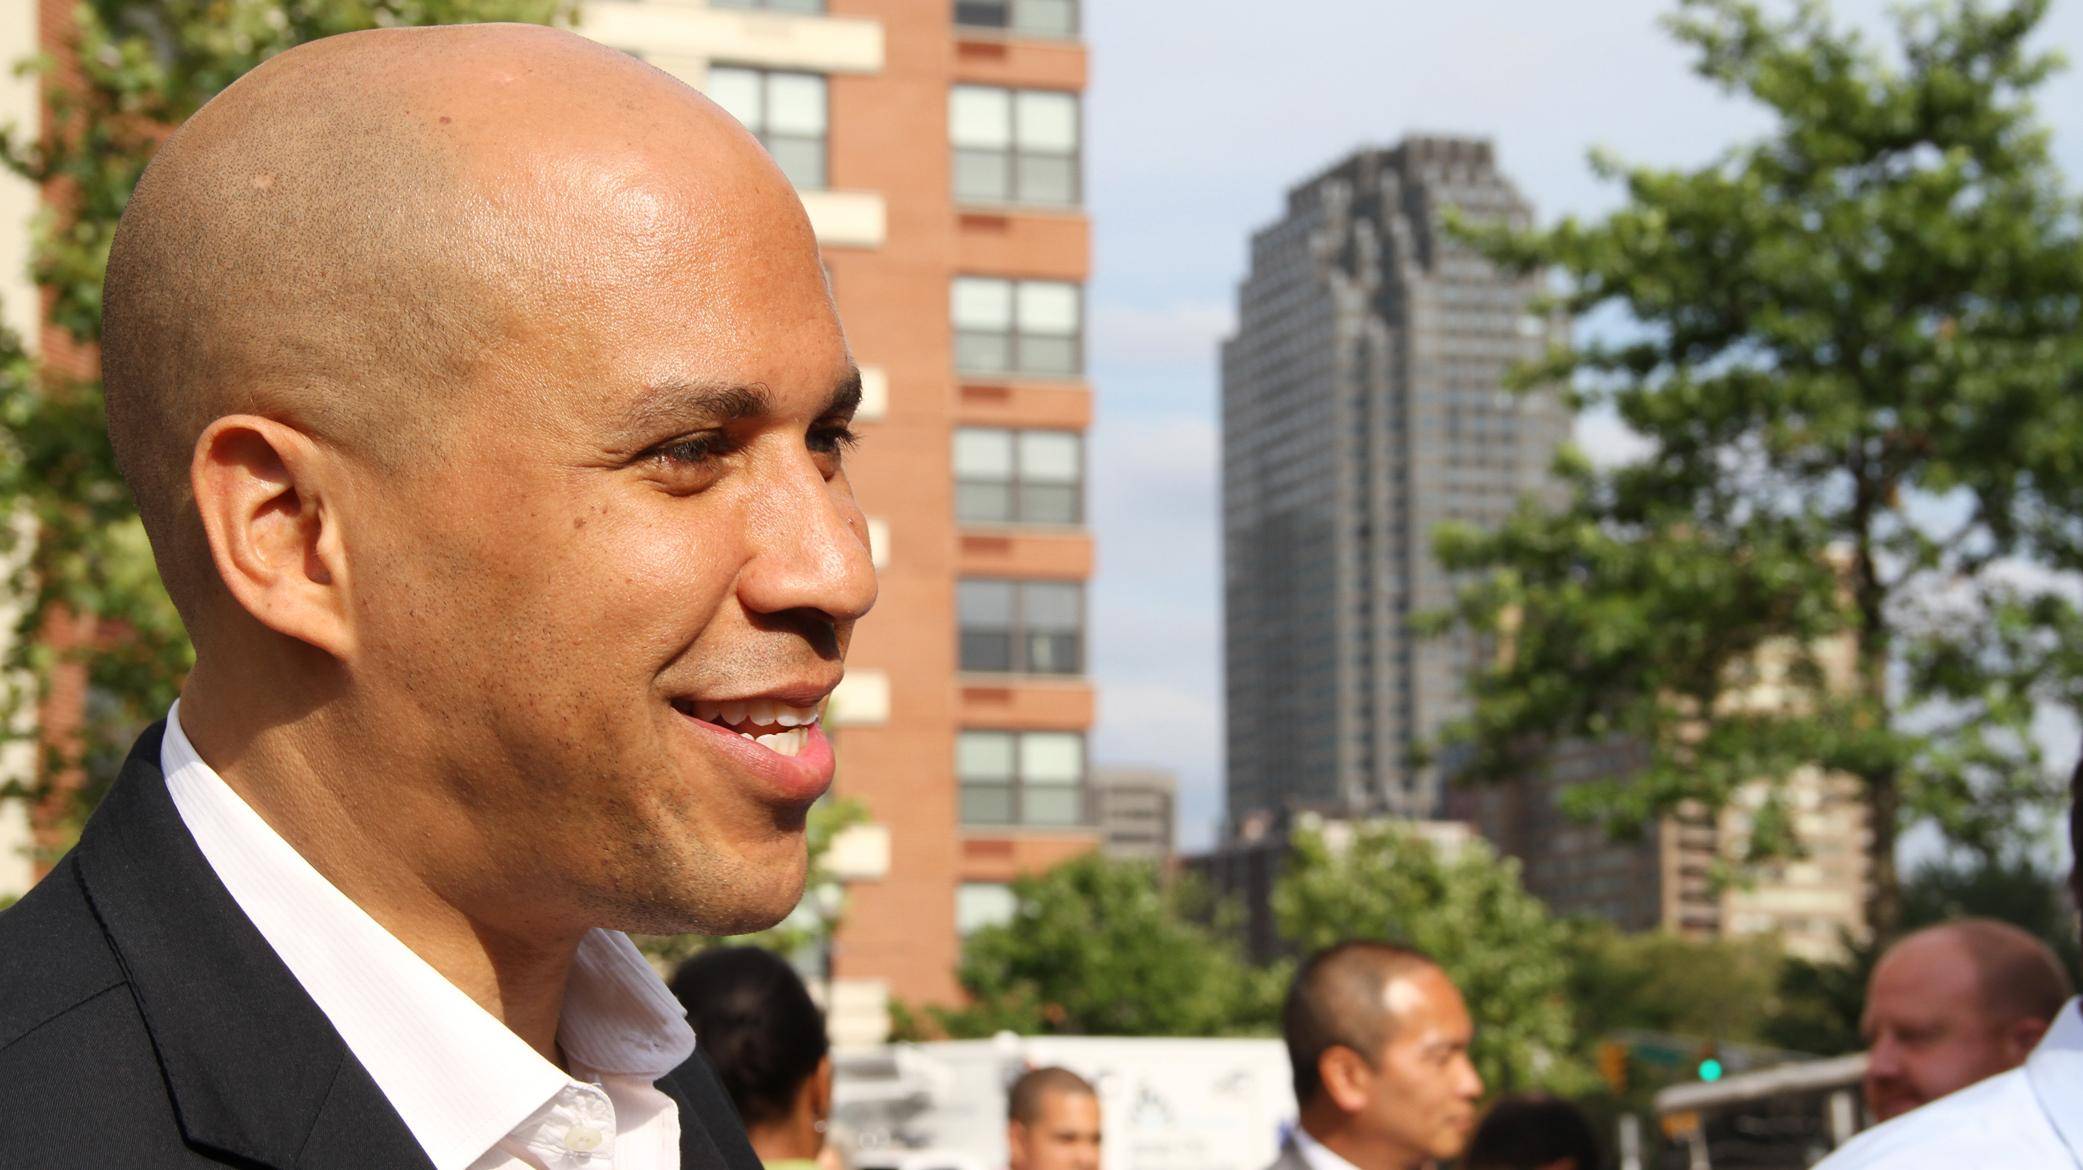 newark mayor cory booker essay Cory booker tells you where to eat in newark cory booker responds to reddit #duckproblems  mayor booker you are so great at tweeting, do you feel social media is .